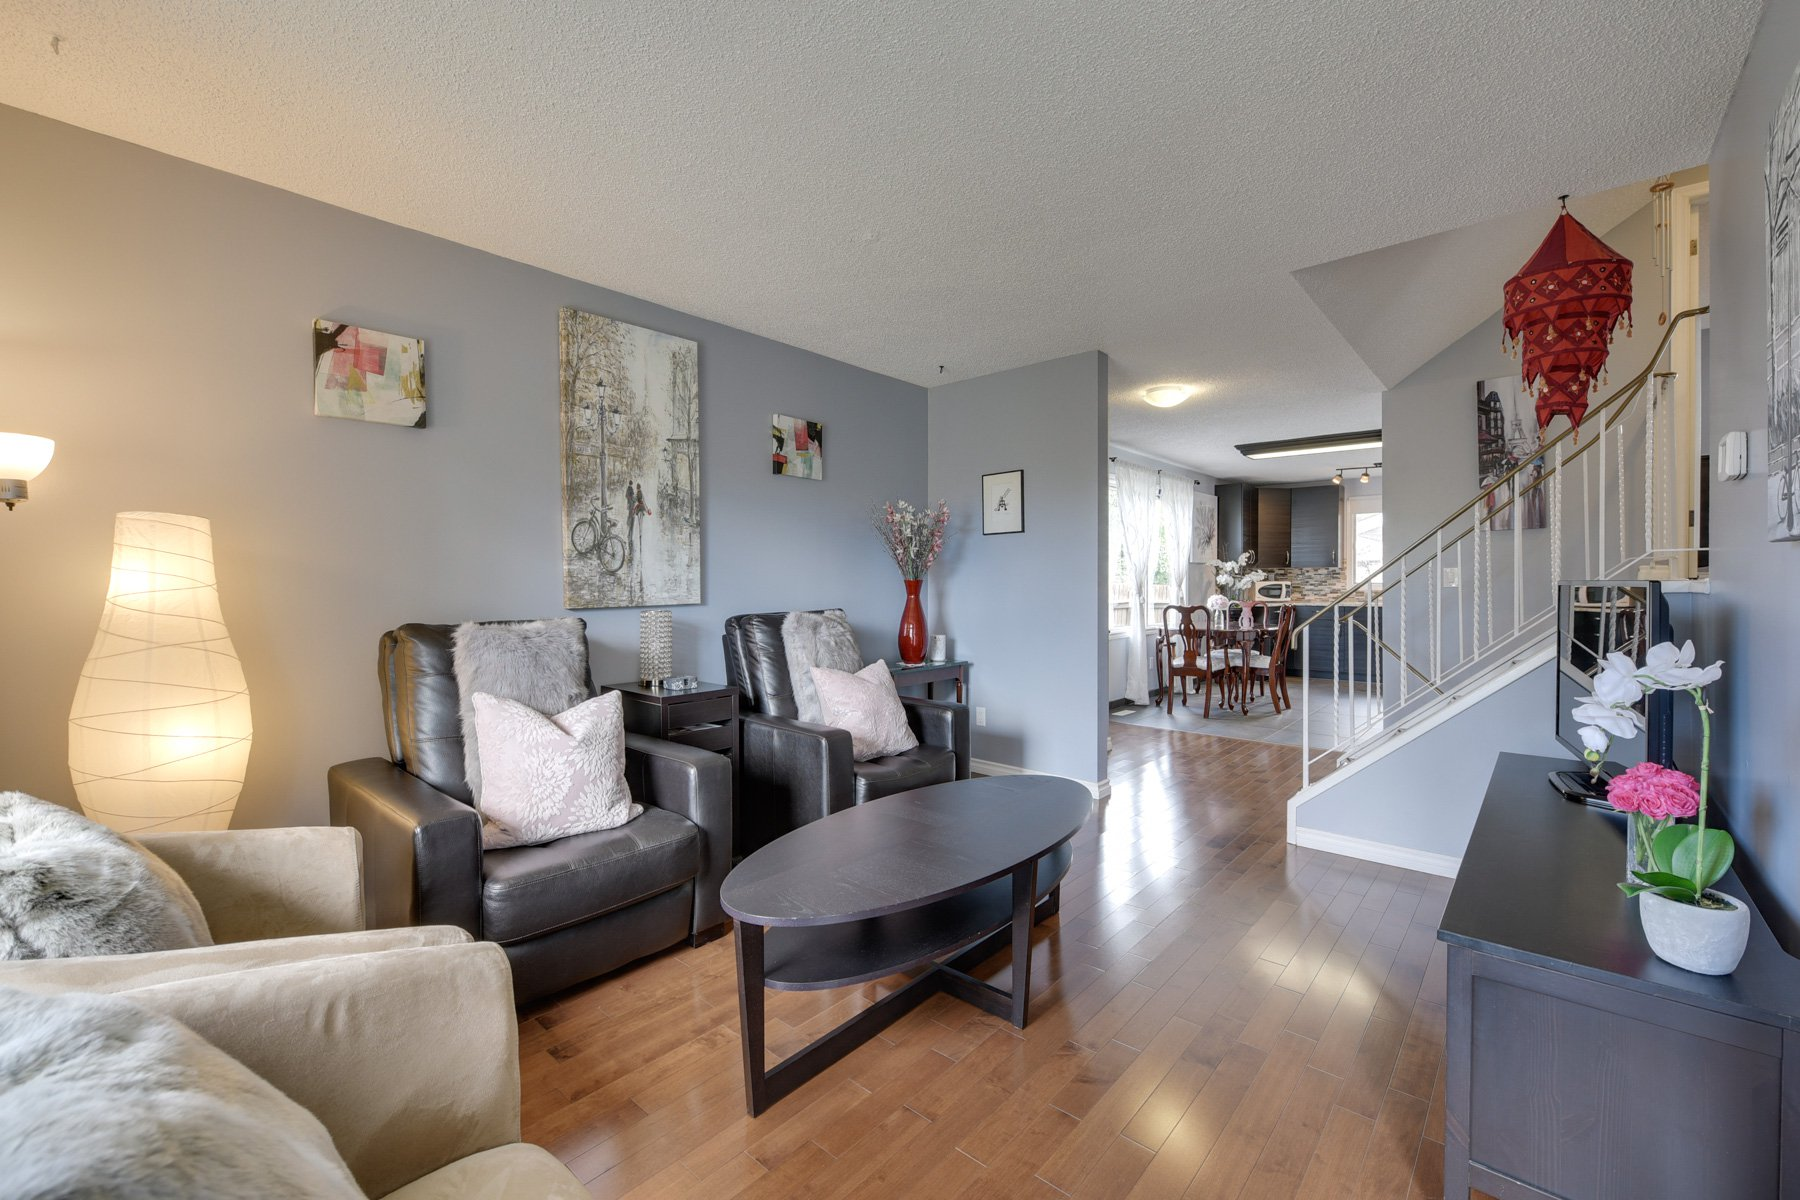 Main Photo: 11912 - 138 Avenue: Edmonton House Duplex for sale : MLS®# E4118554